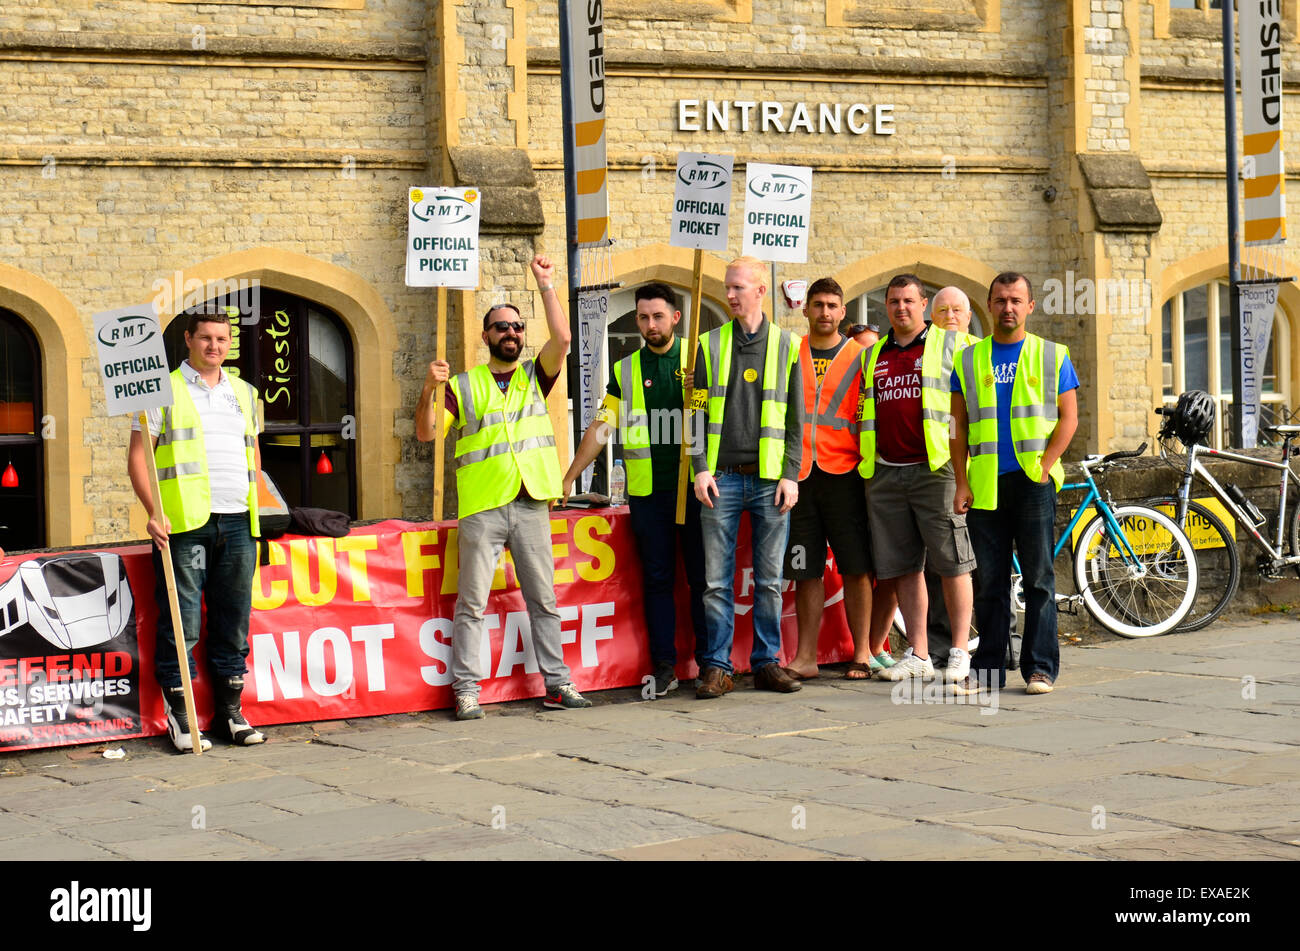 Picket Line Stock Photos & Picket Line Stock Images - Alamy